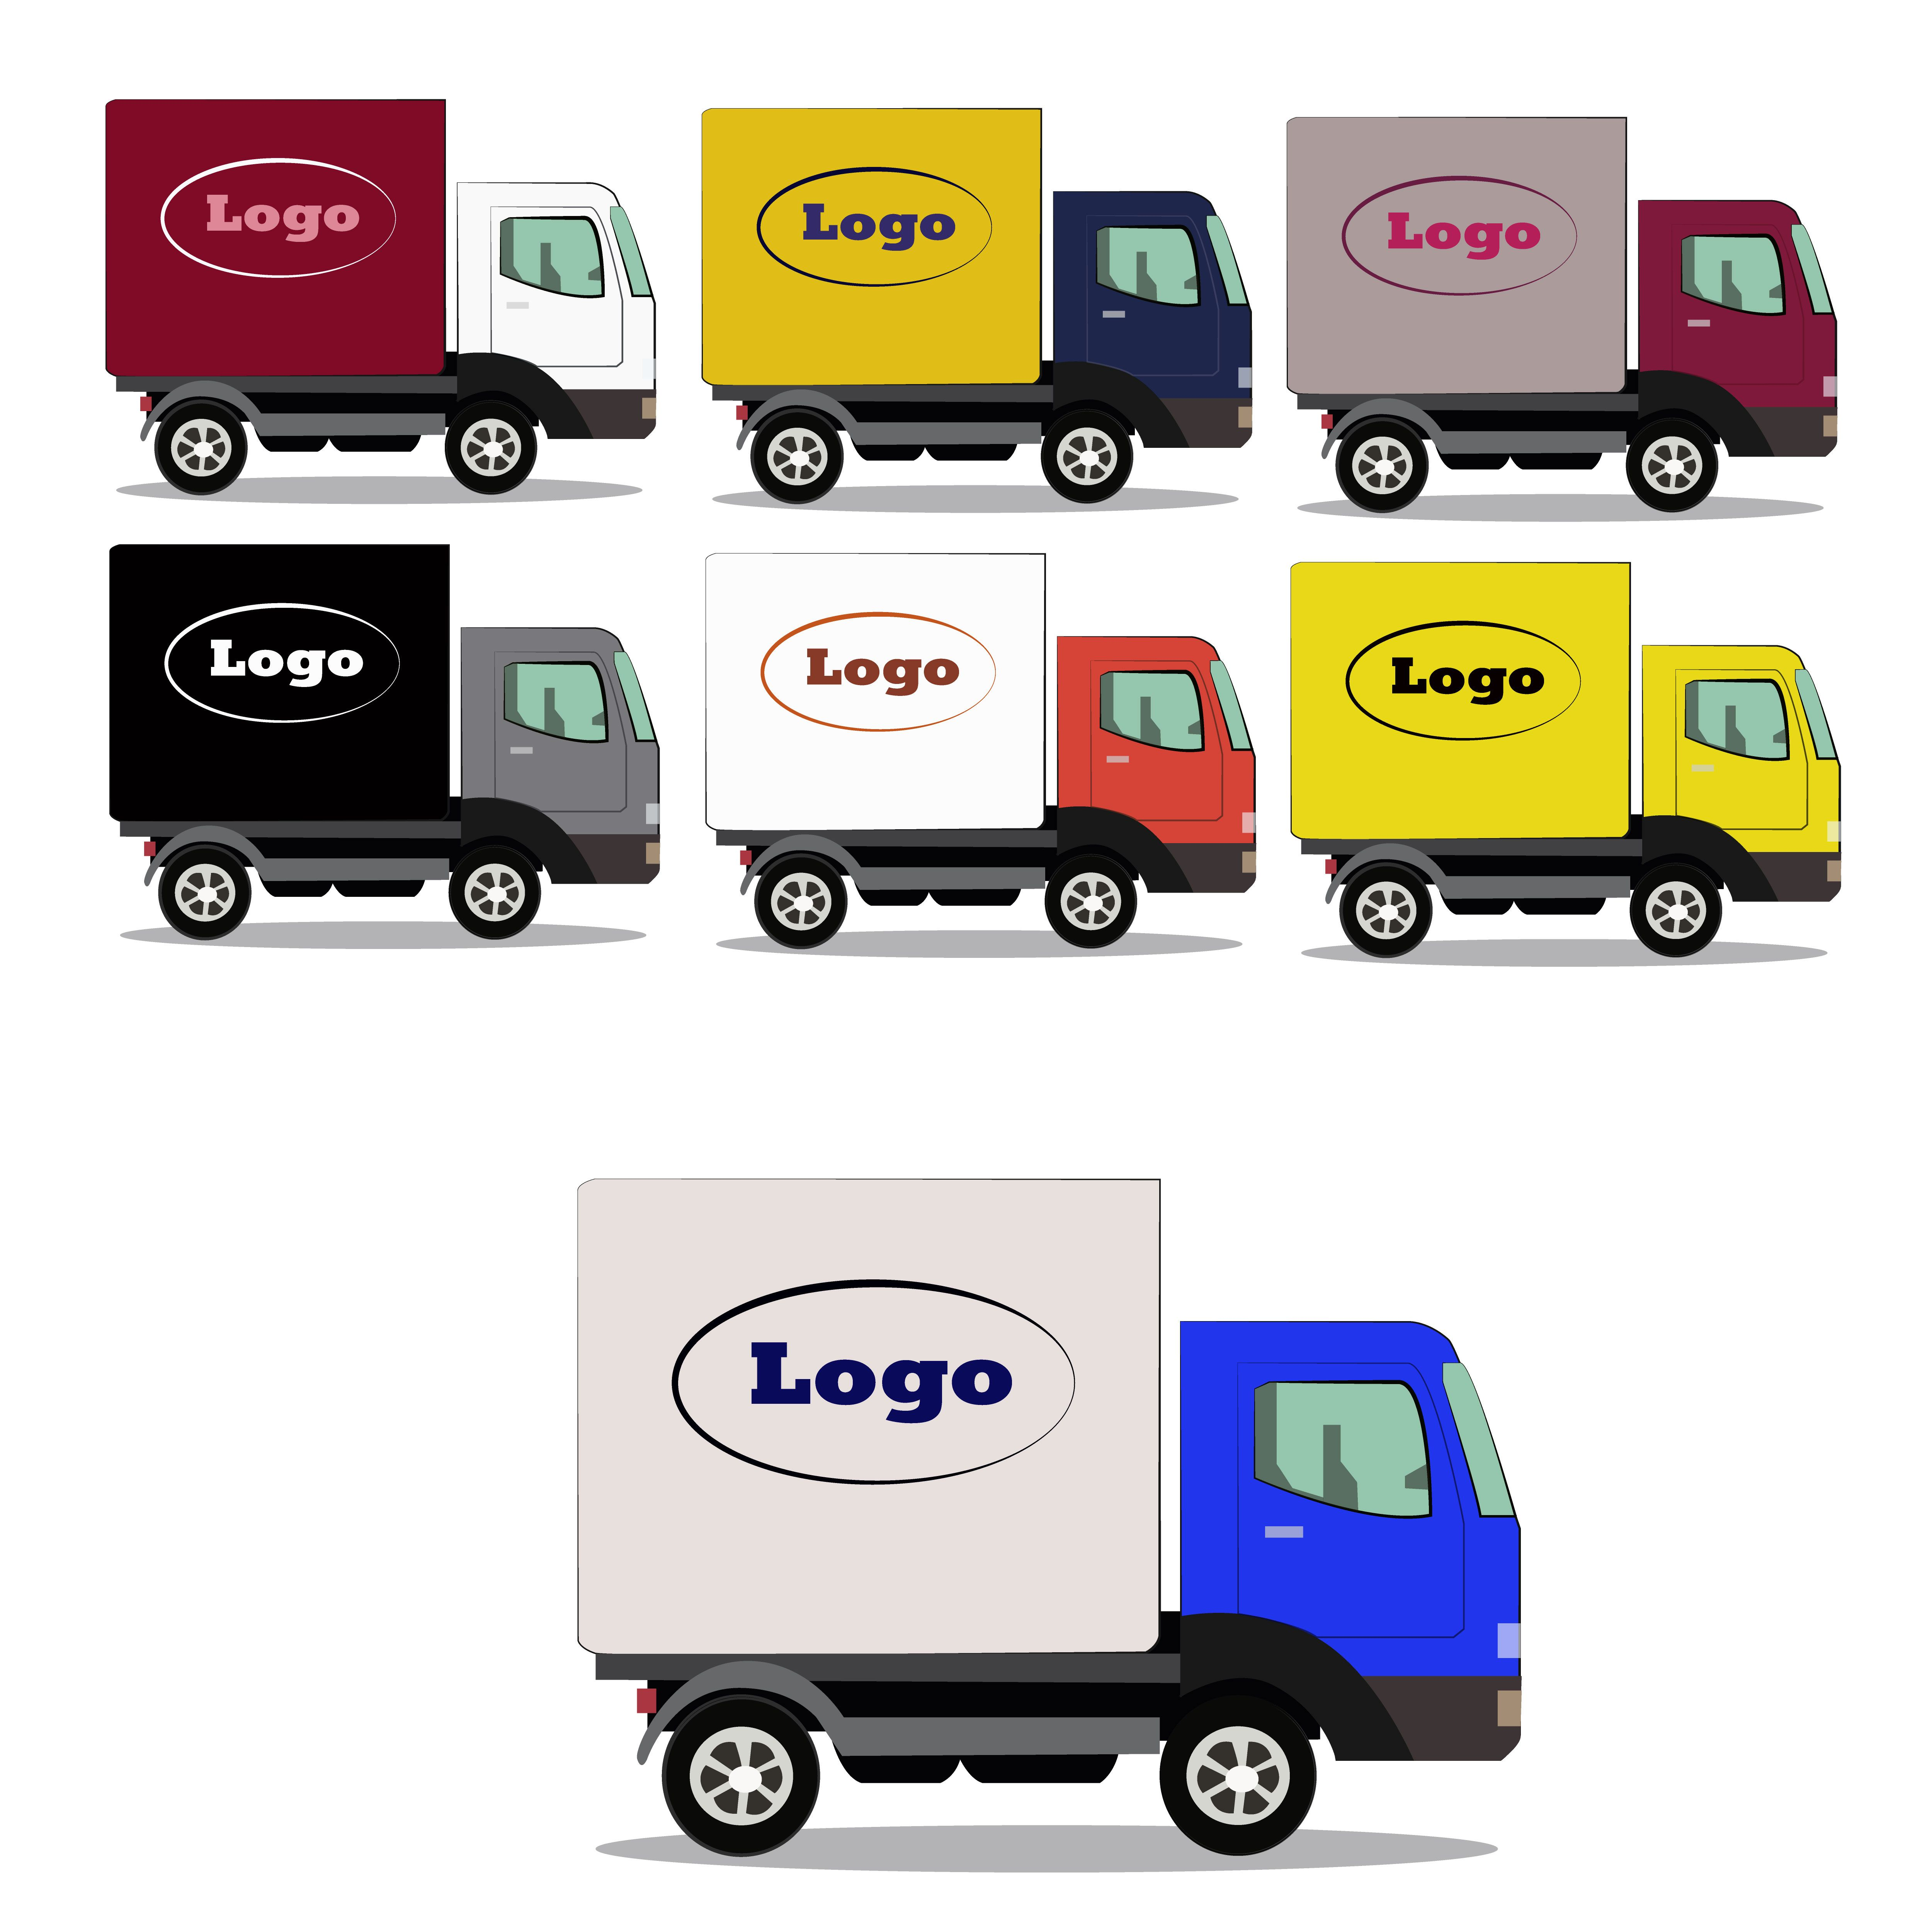 Truck Delivery Icon Vector Car Illustration Business Design